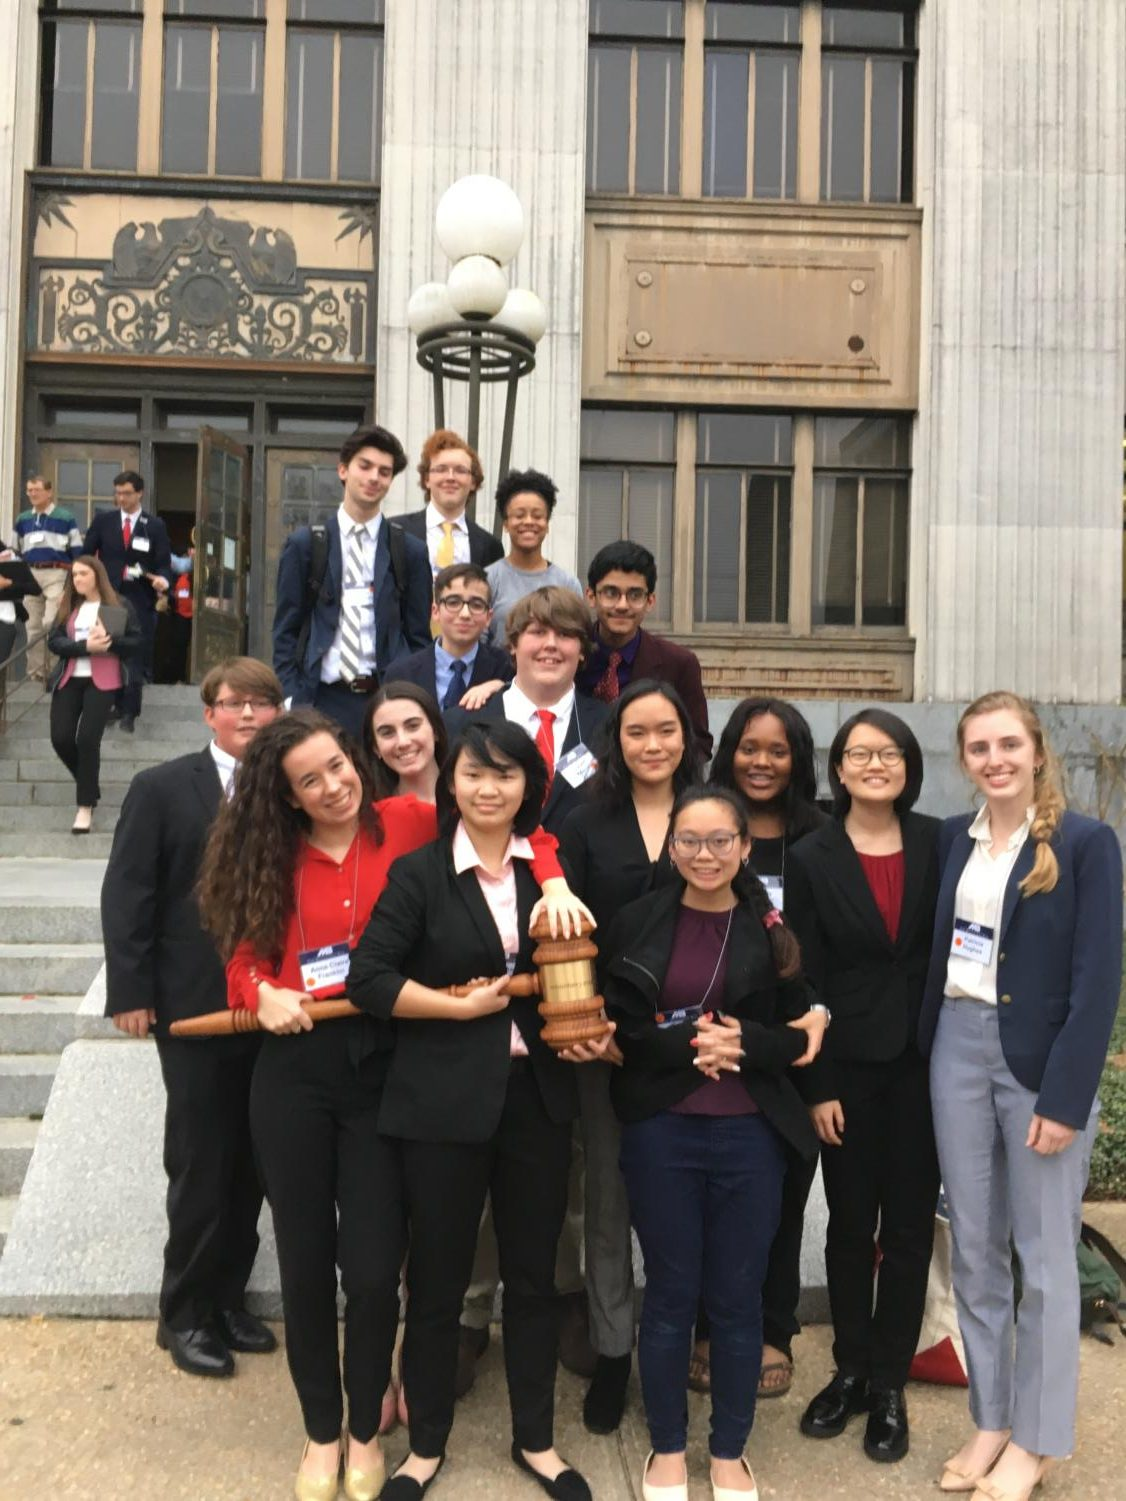 Members of the Mock trial team stand and smile with their awards from the state competition. The team placed fourth at the state competition on .